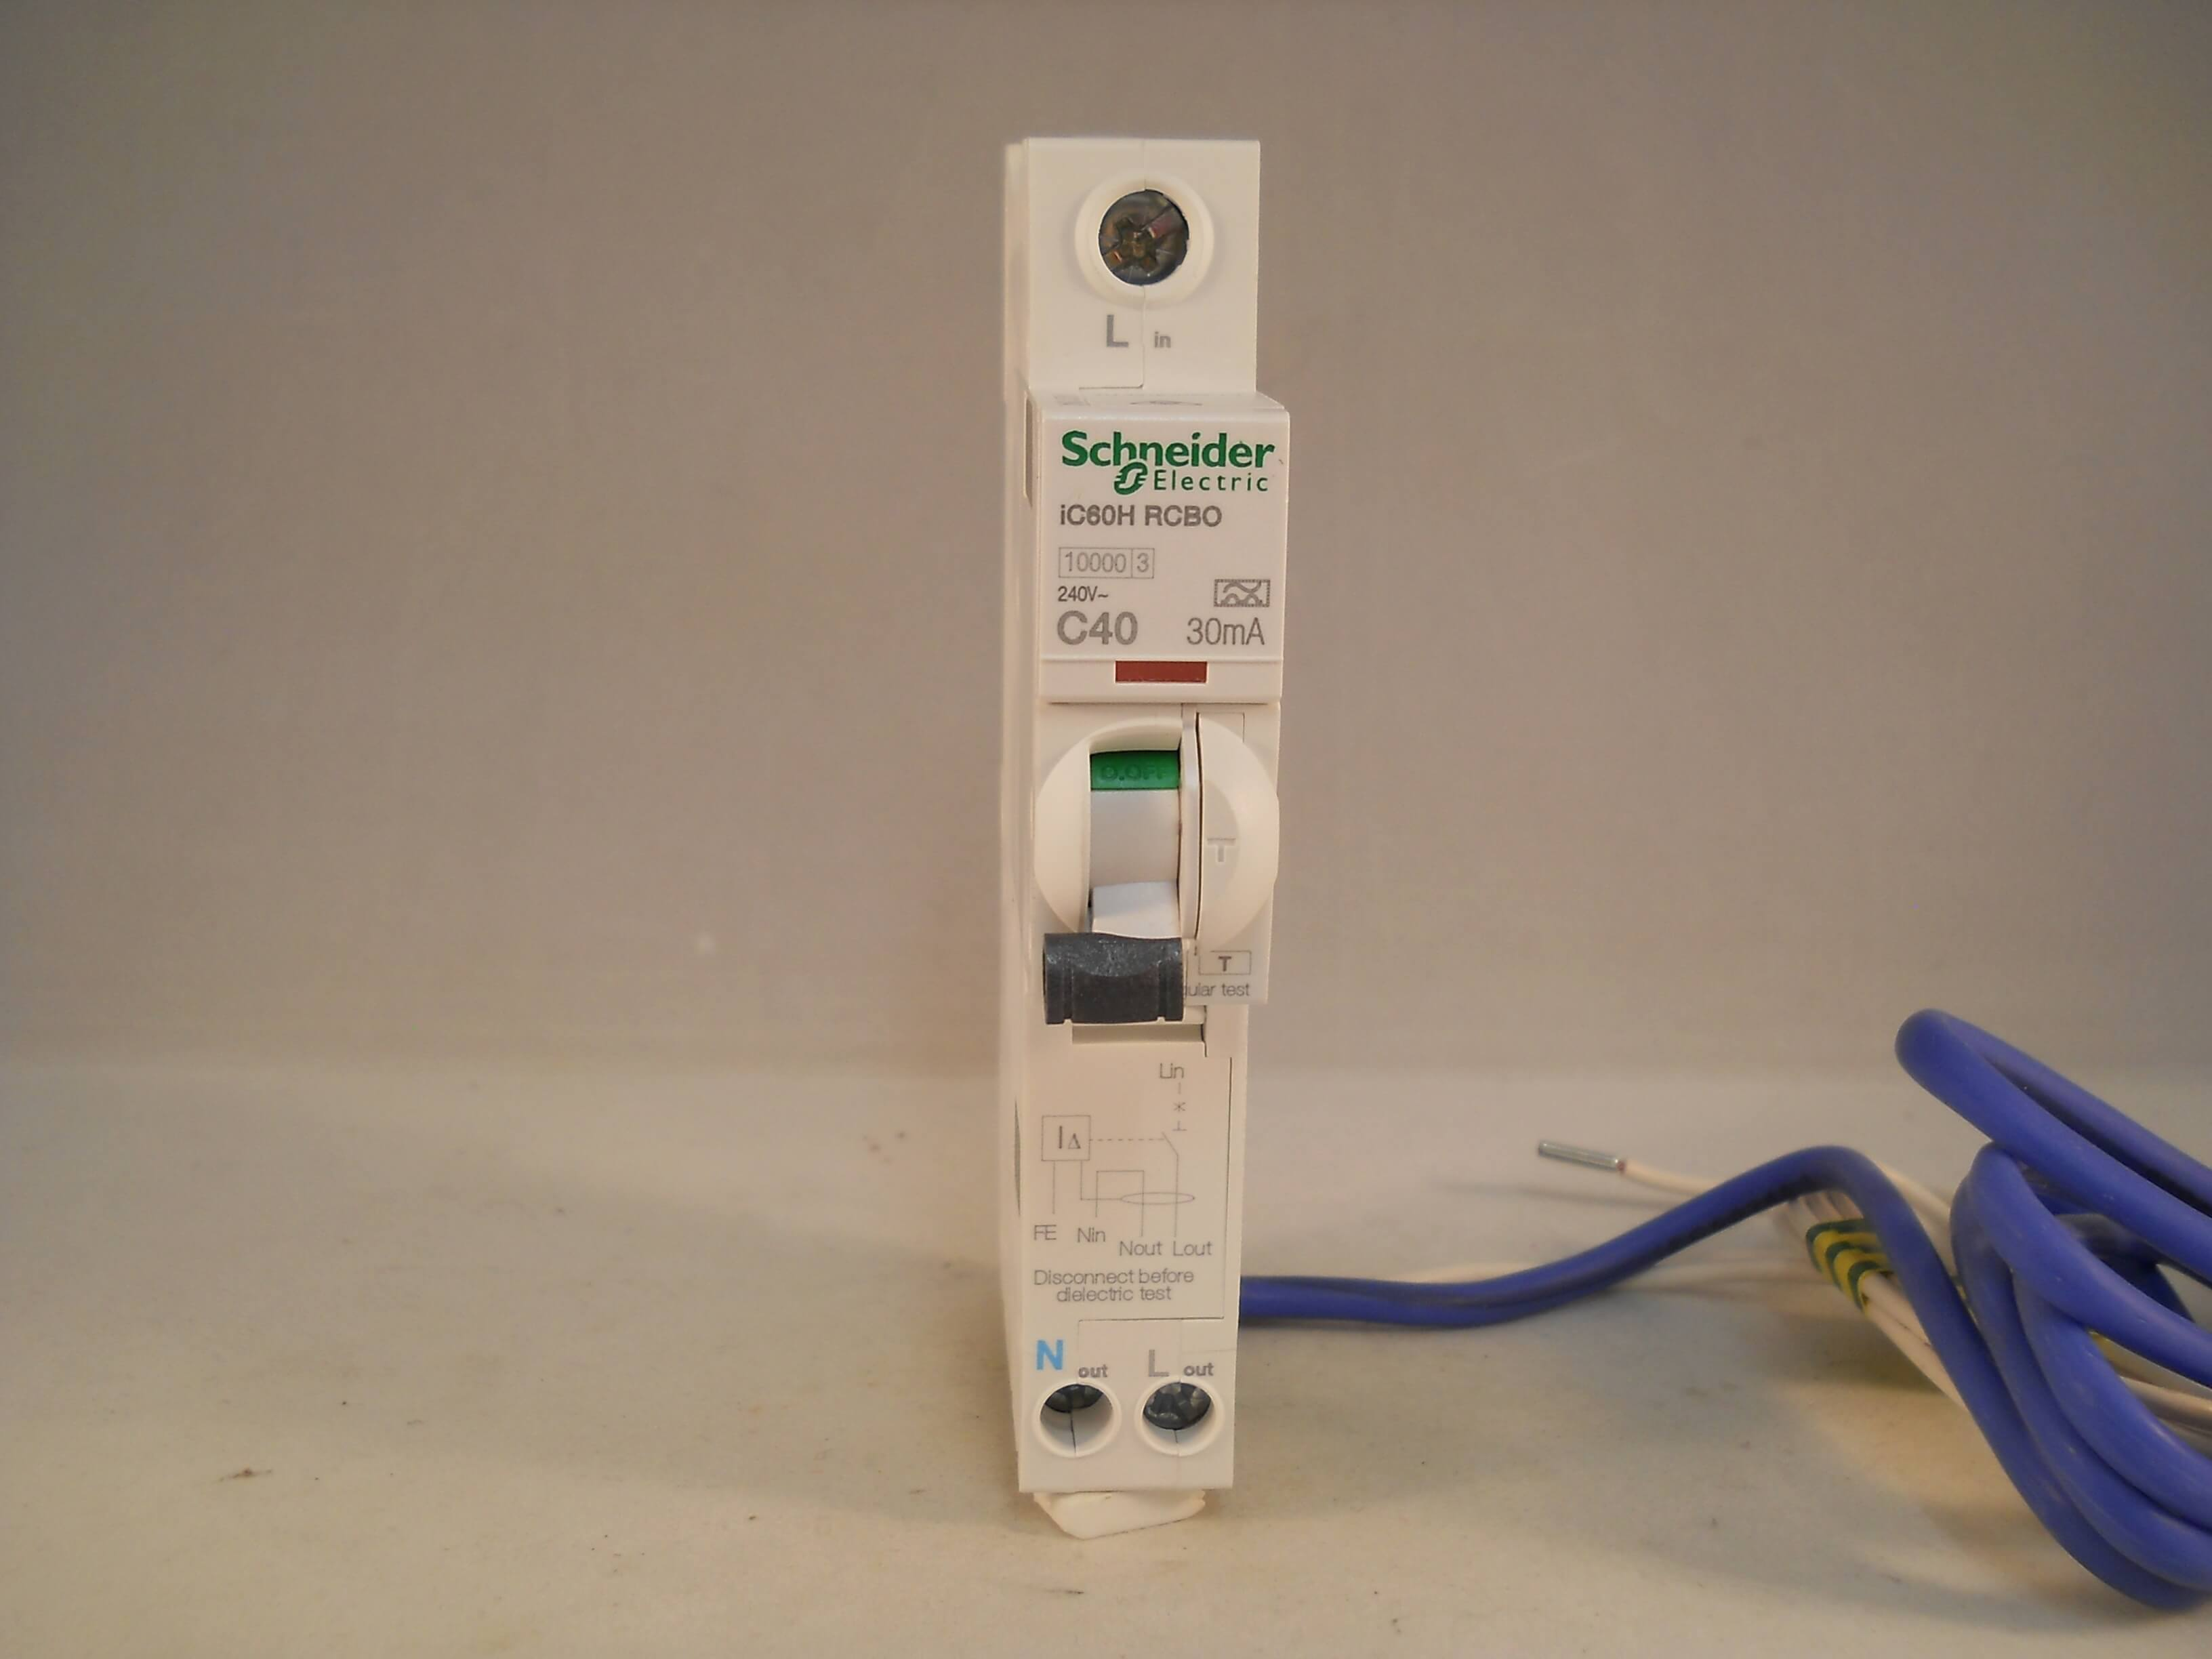 Schneider Rcbo 40 Amp 30ma Type C 40a Acti9 Ic60h Merlin